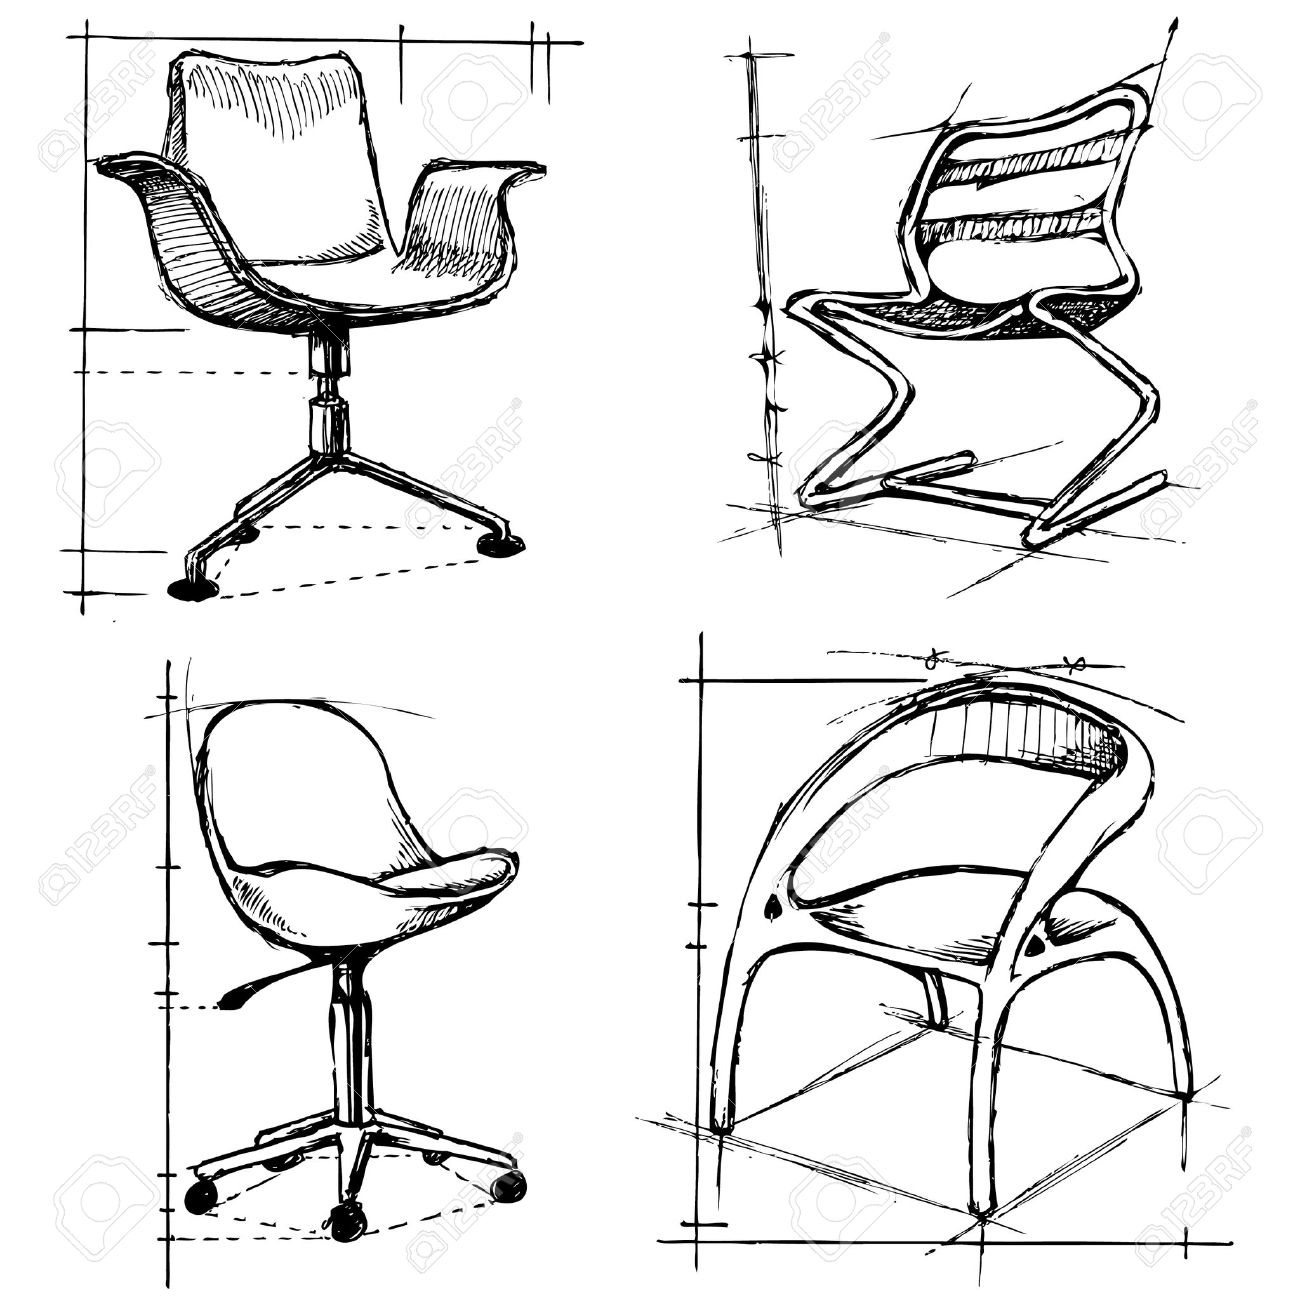 furniture design drawings. chairs drawings stock vector 8967147 furniture design e